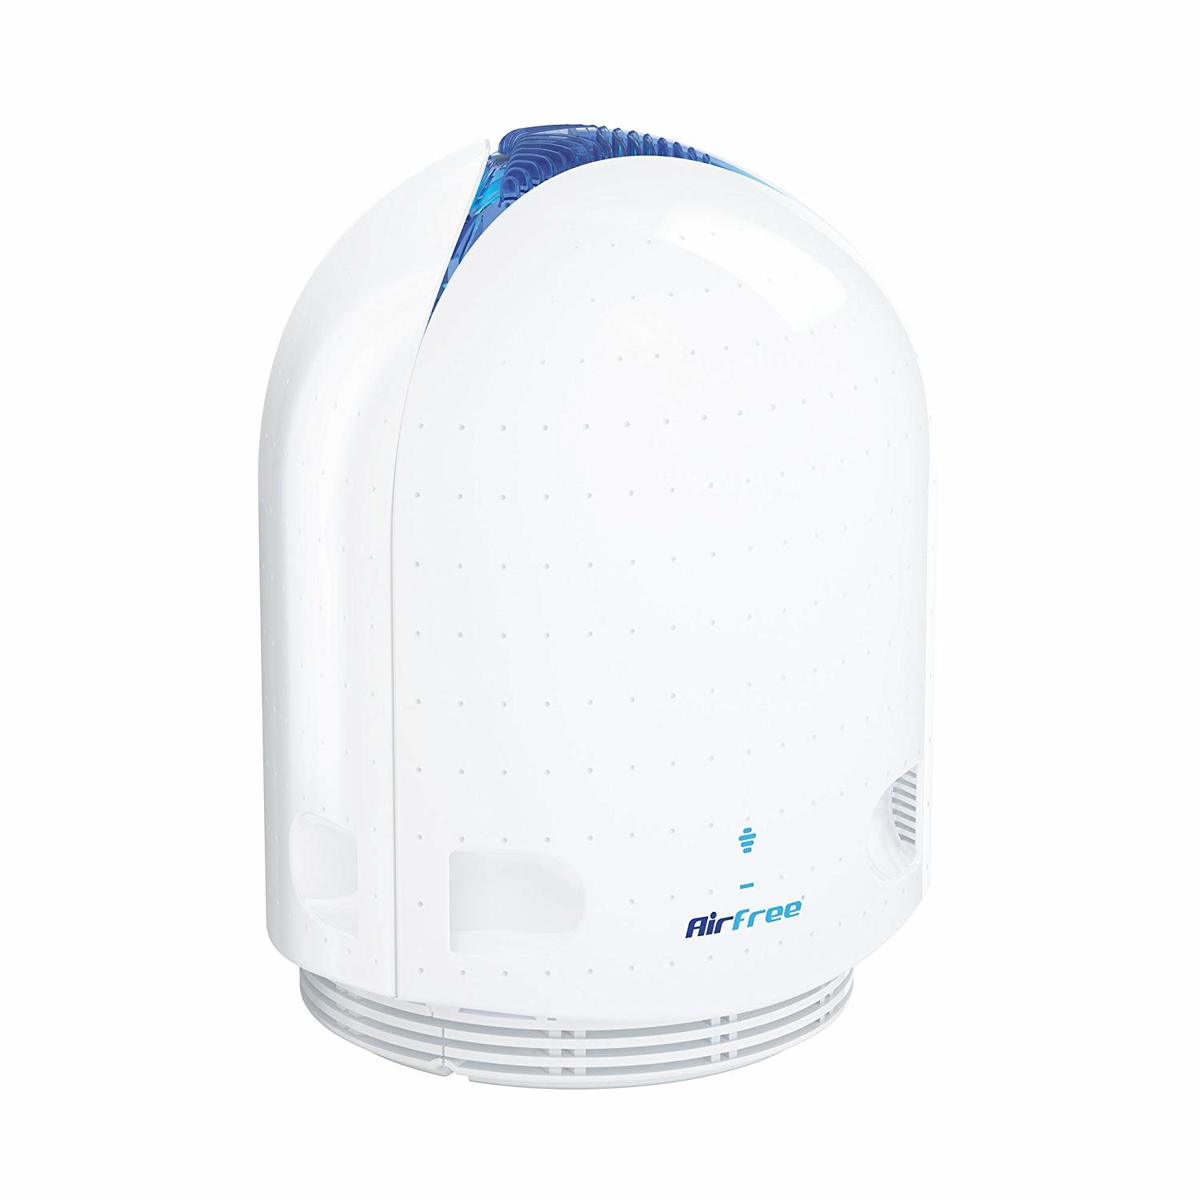 Airfree IRIS60 IRIS 60 Air Purifier